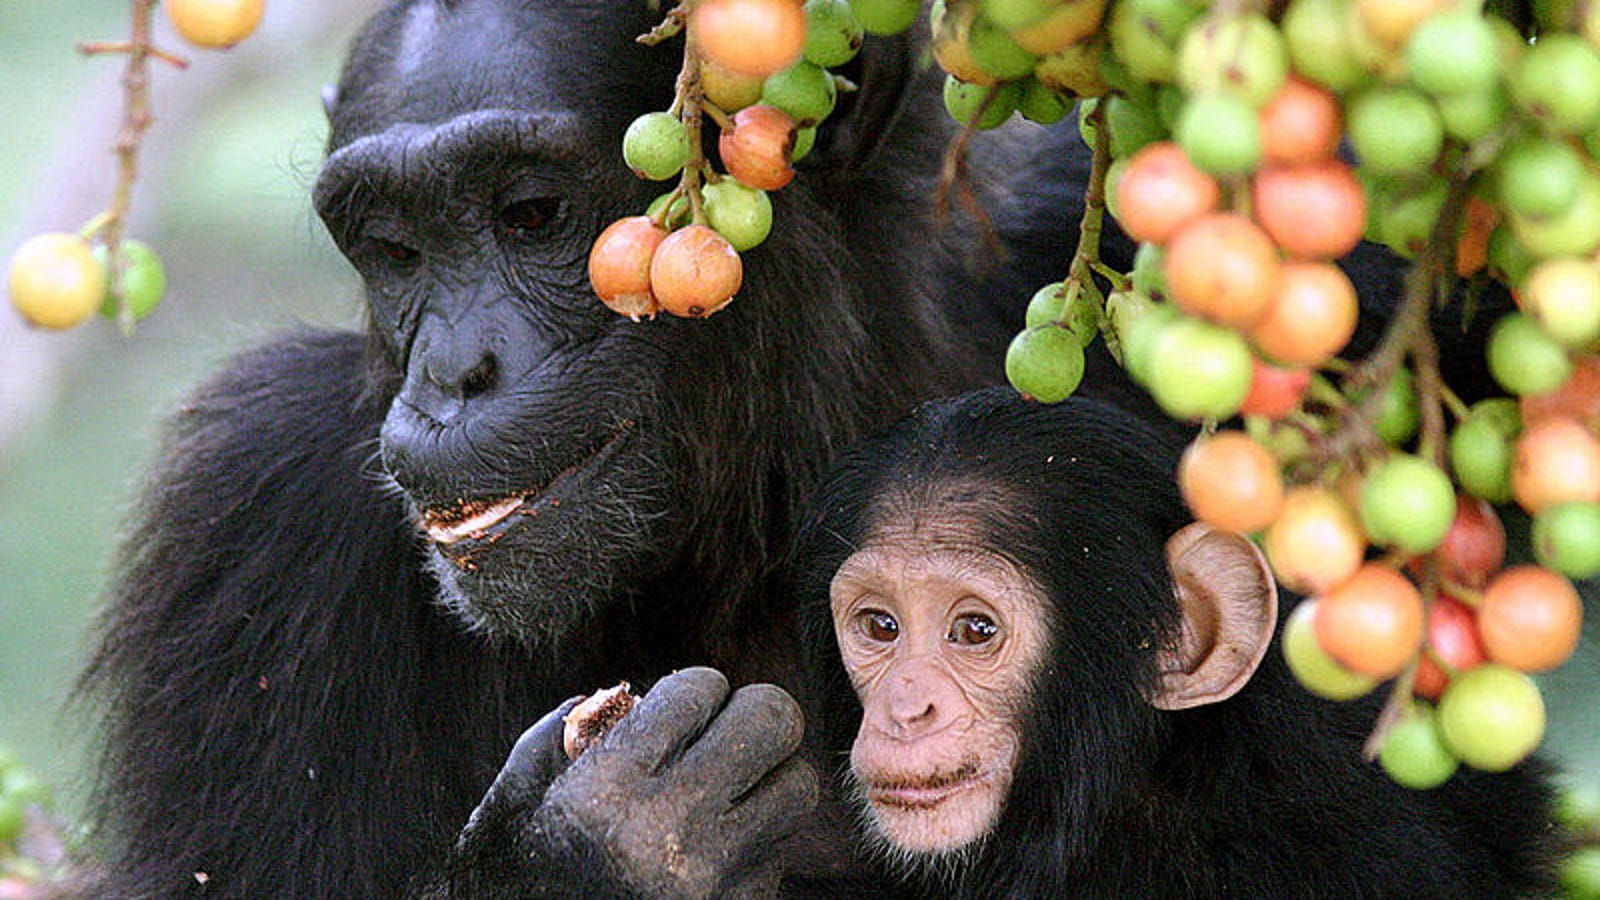 Video Footage Captures Mommy Chimp Caring For Disabled Baby In the Wild